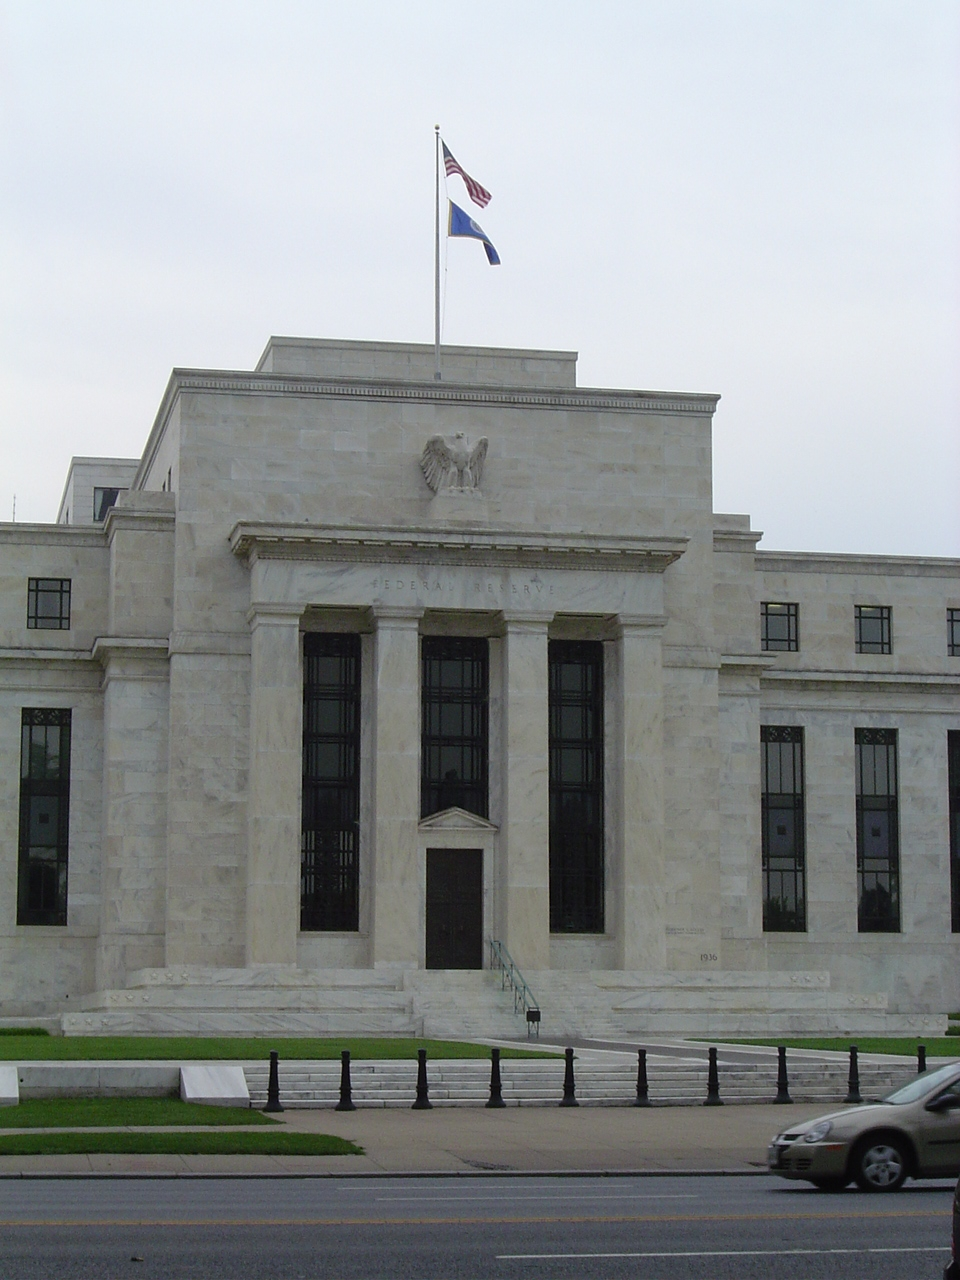 Here's the Federal Reserve building in Washington, DC; looks kind of like the Parthenon with a flag stuck on top where the Romans might have put a sculpture of the goddess.